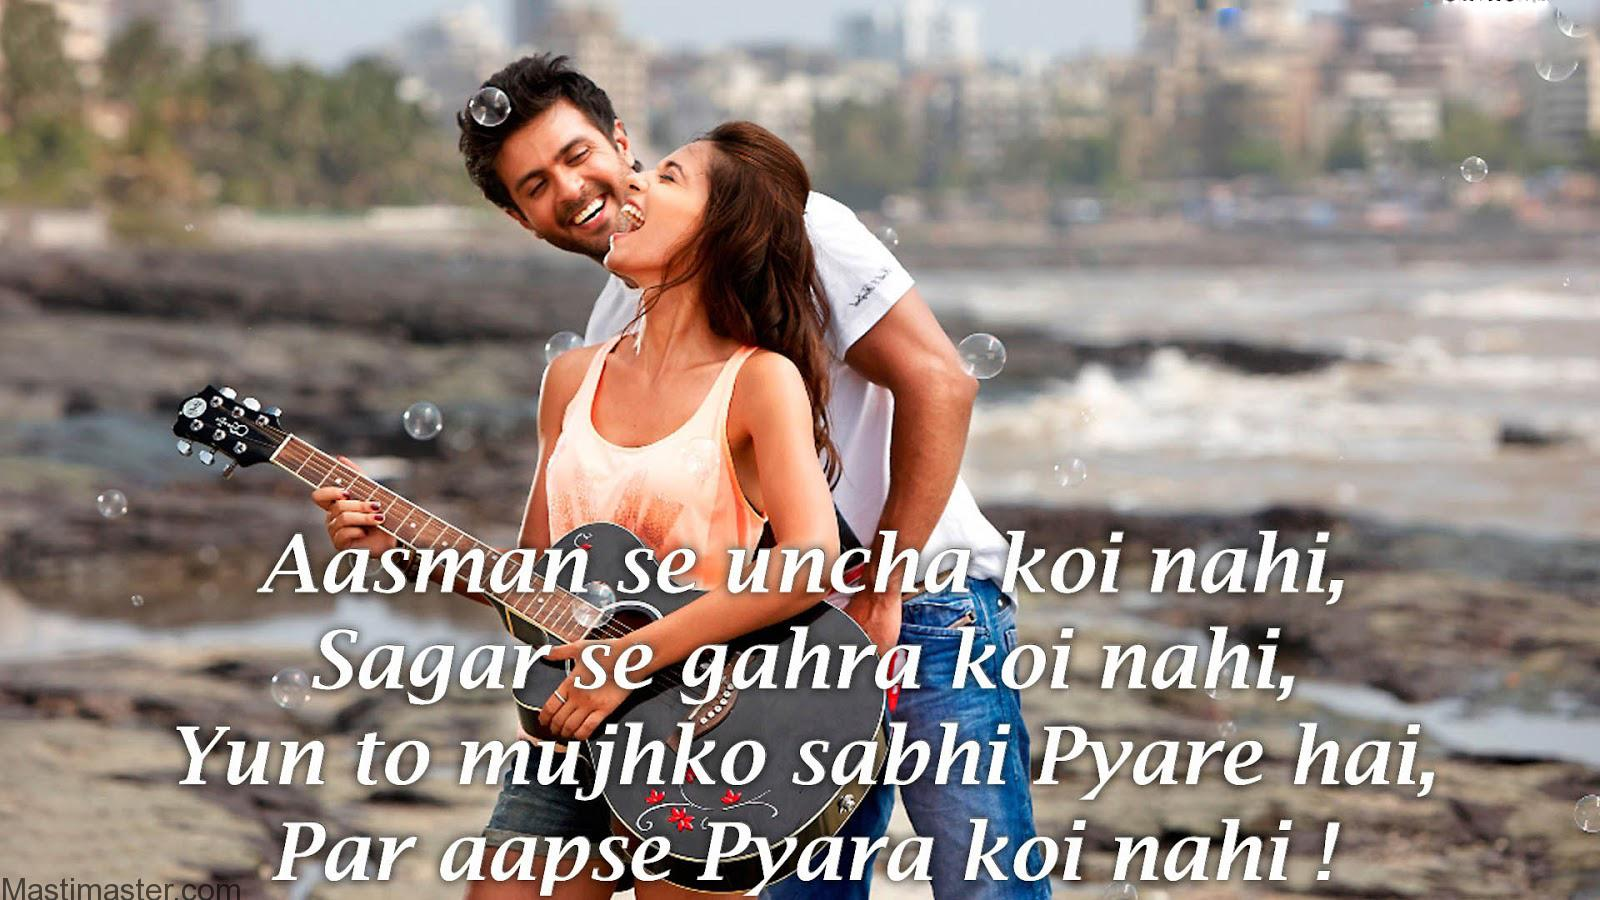 Happy Couple Love Shyari Romantic Image Wallpaper Cedfcdacdfcda - Romantic Couple With Quotes , HD Wallpaper & Backgrounds